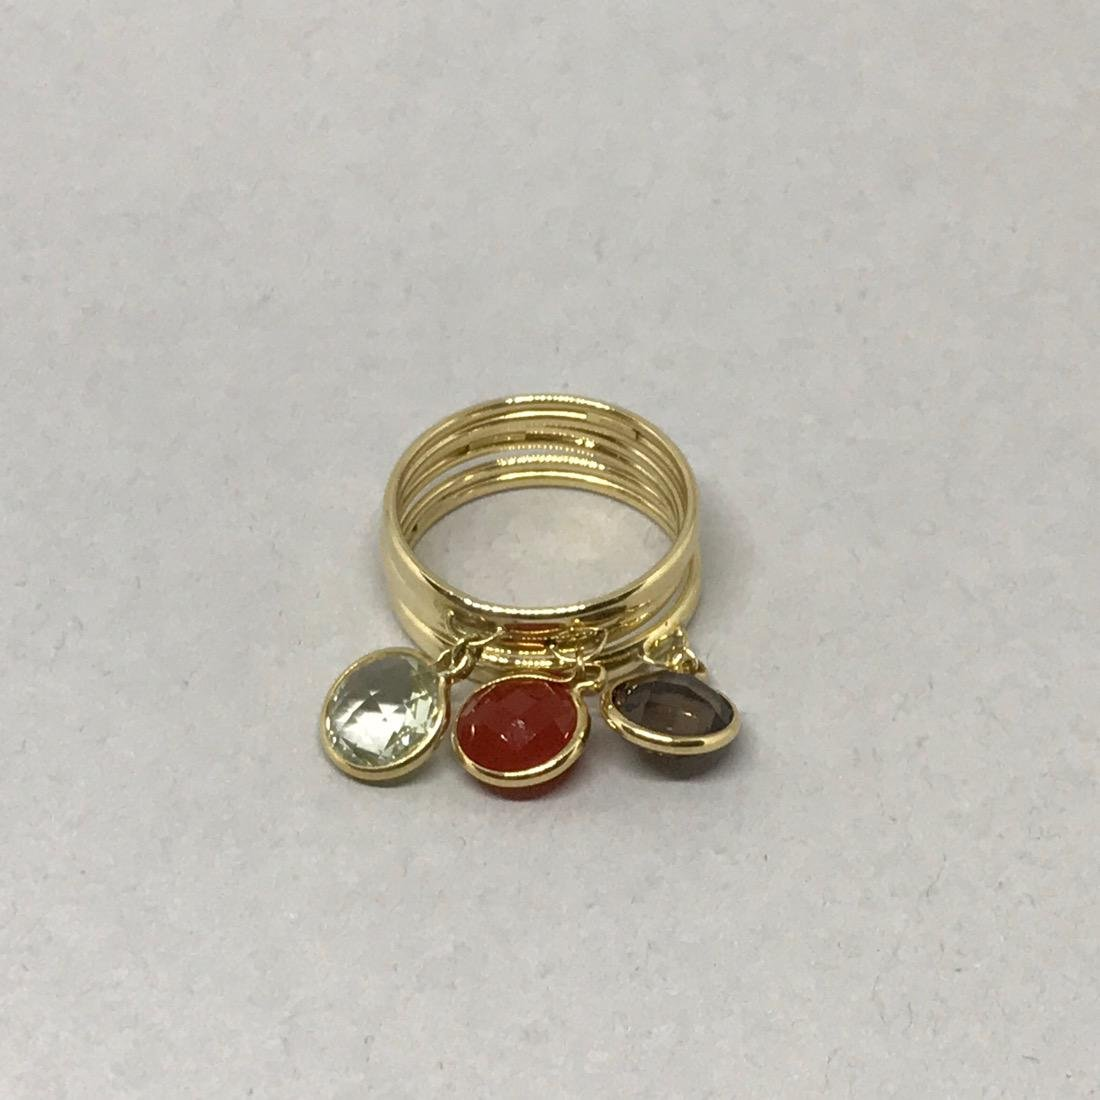 Set of 3 14K Gold Rings with Gemstone Charms - 2